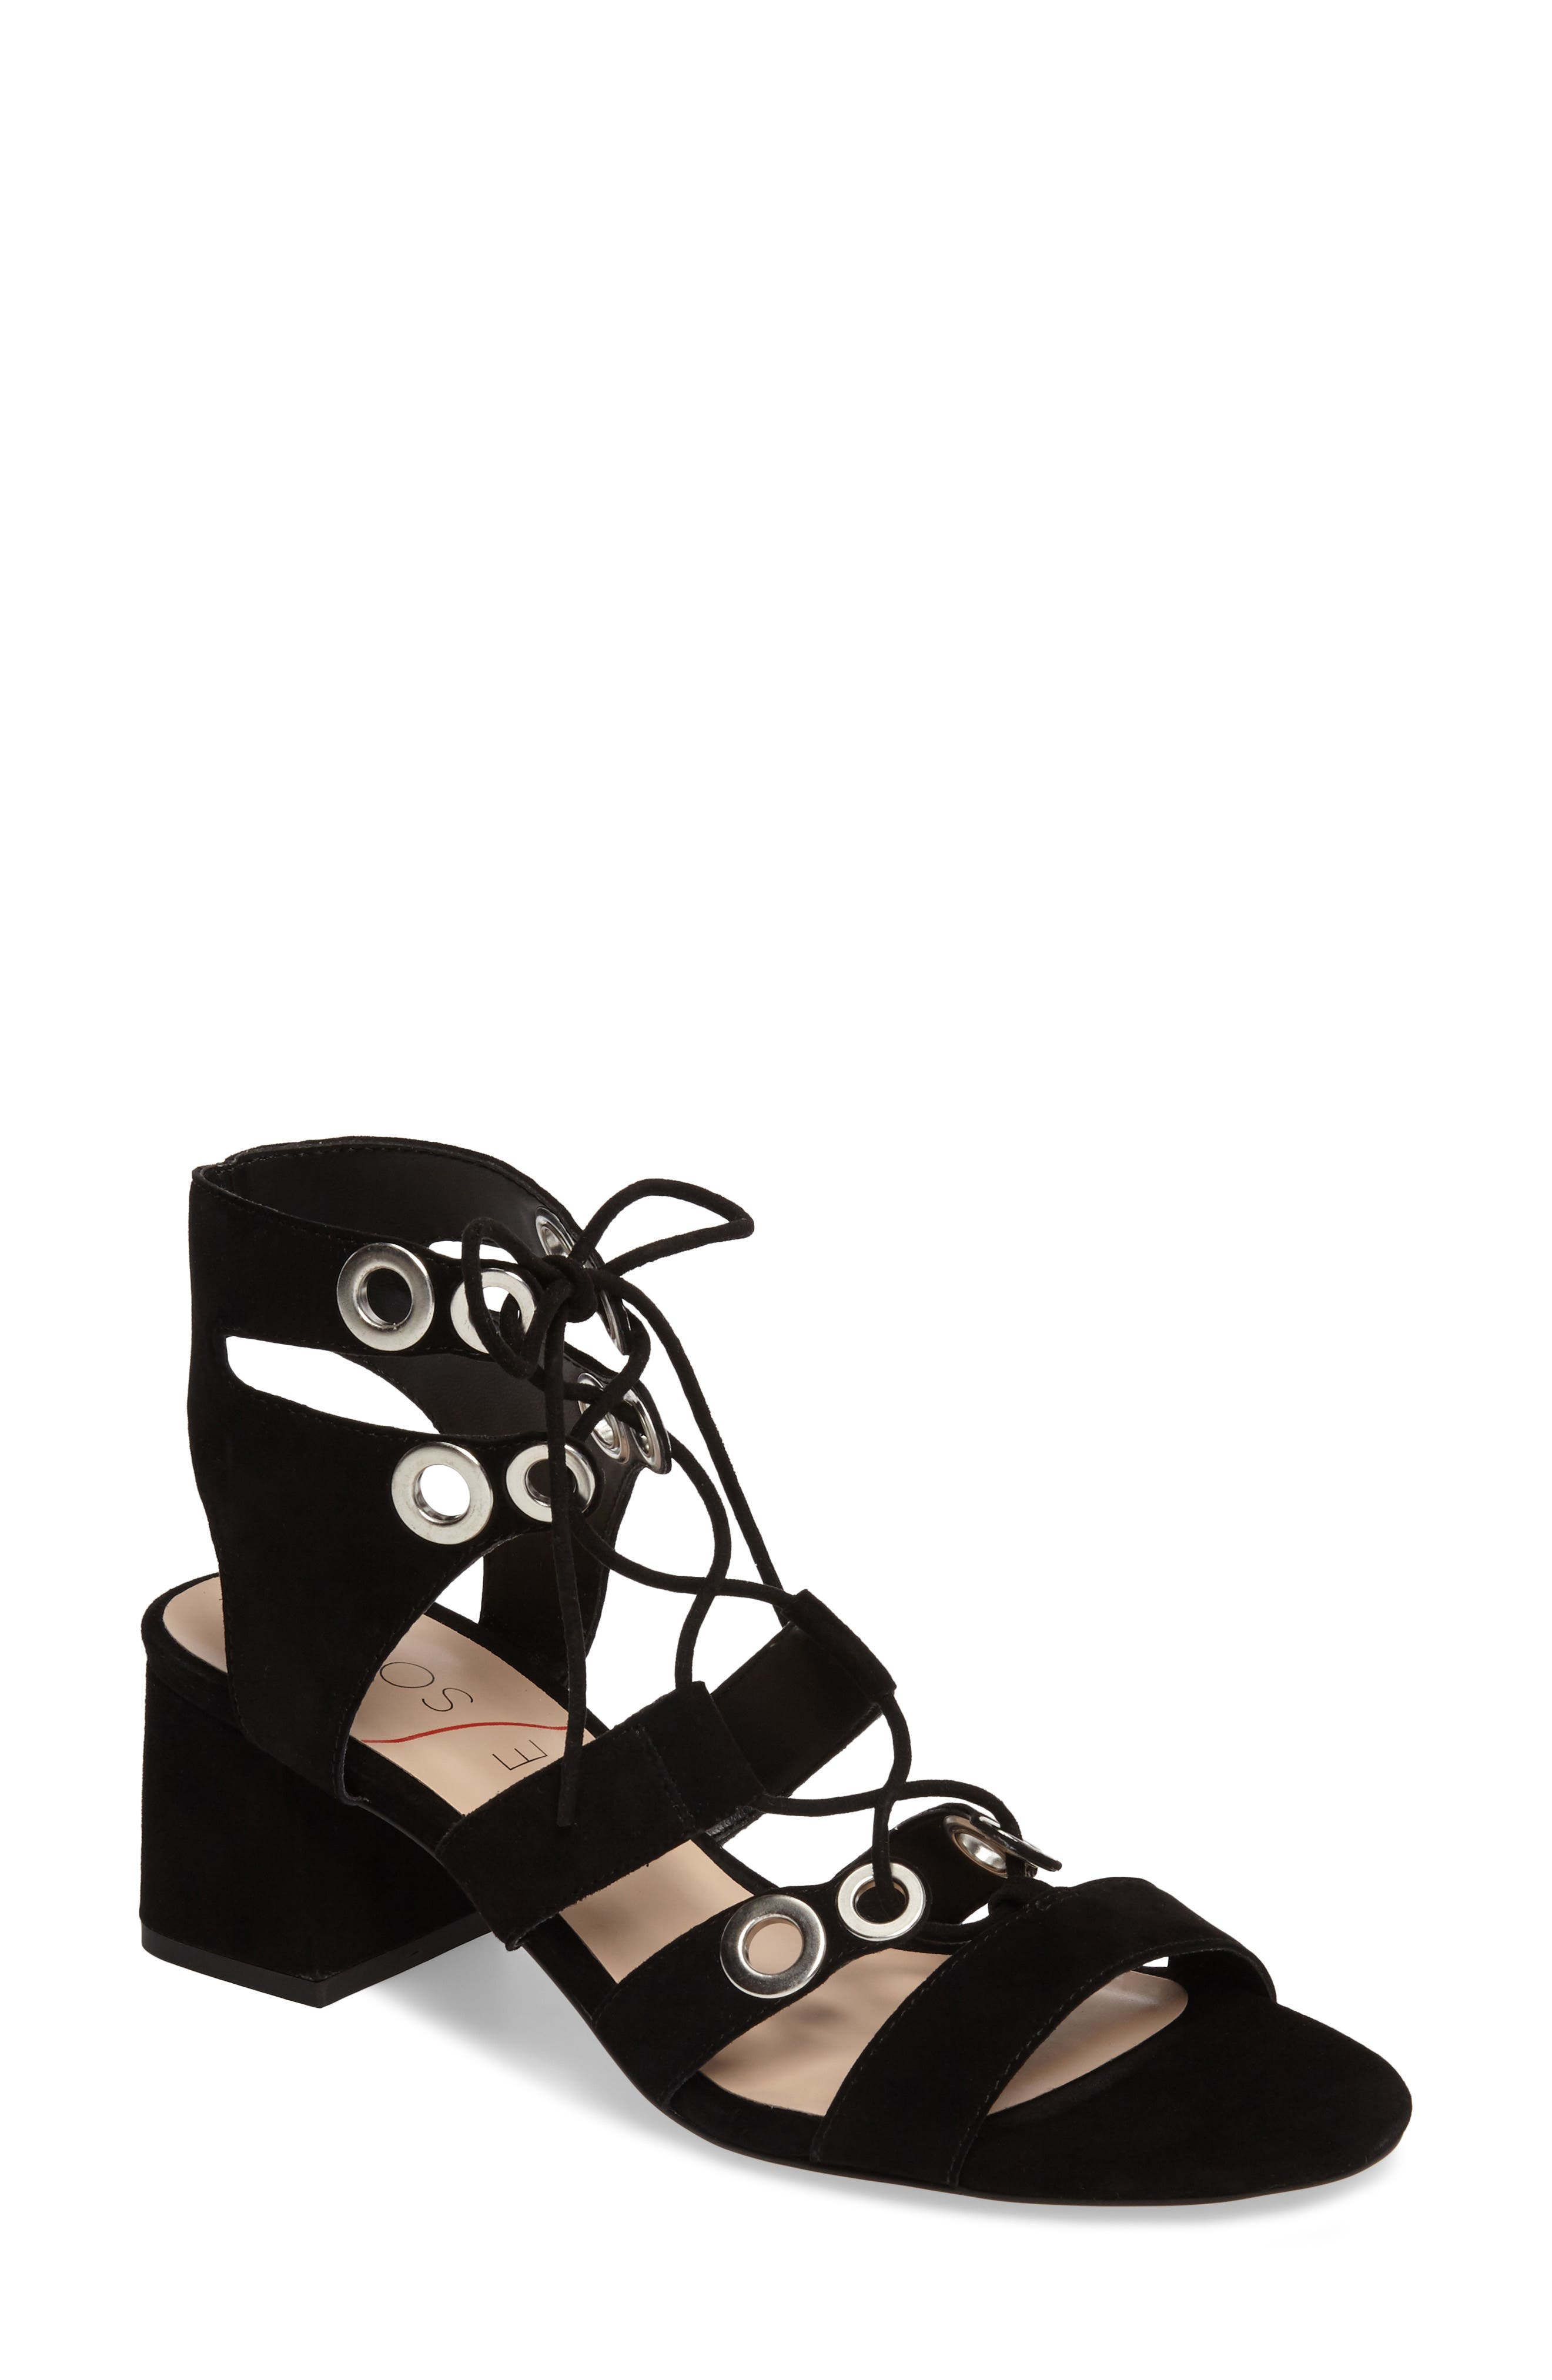 Rosemary Lace-Up Sandal,                         Main,                         color, Black